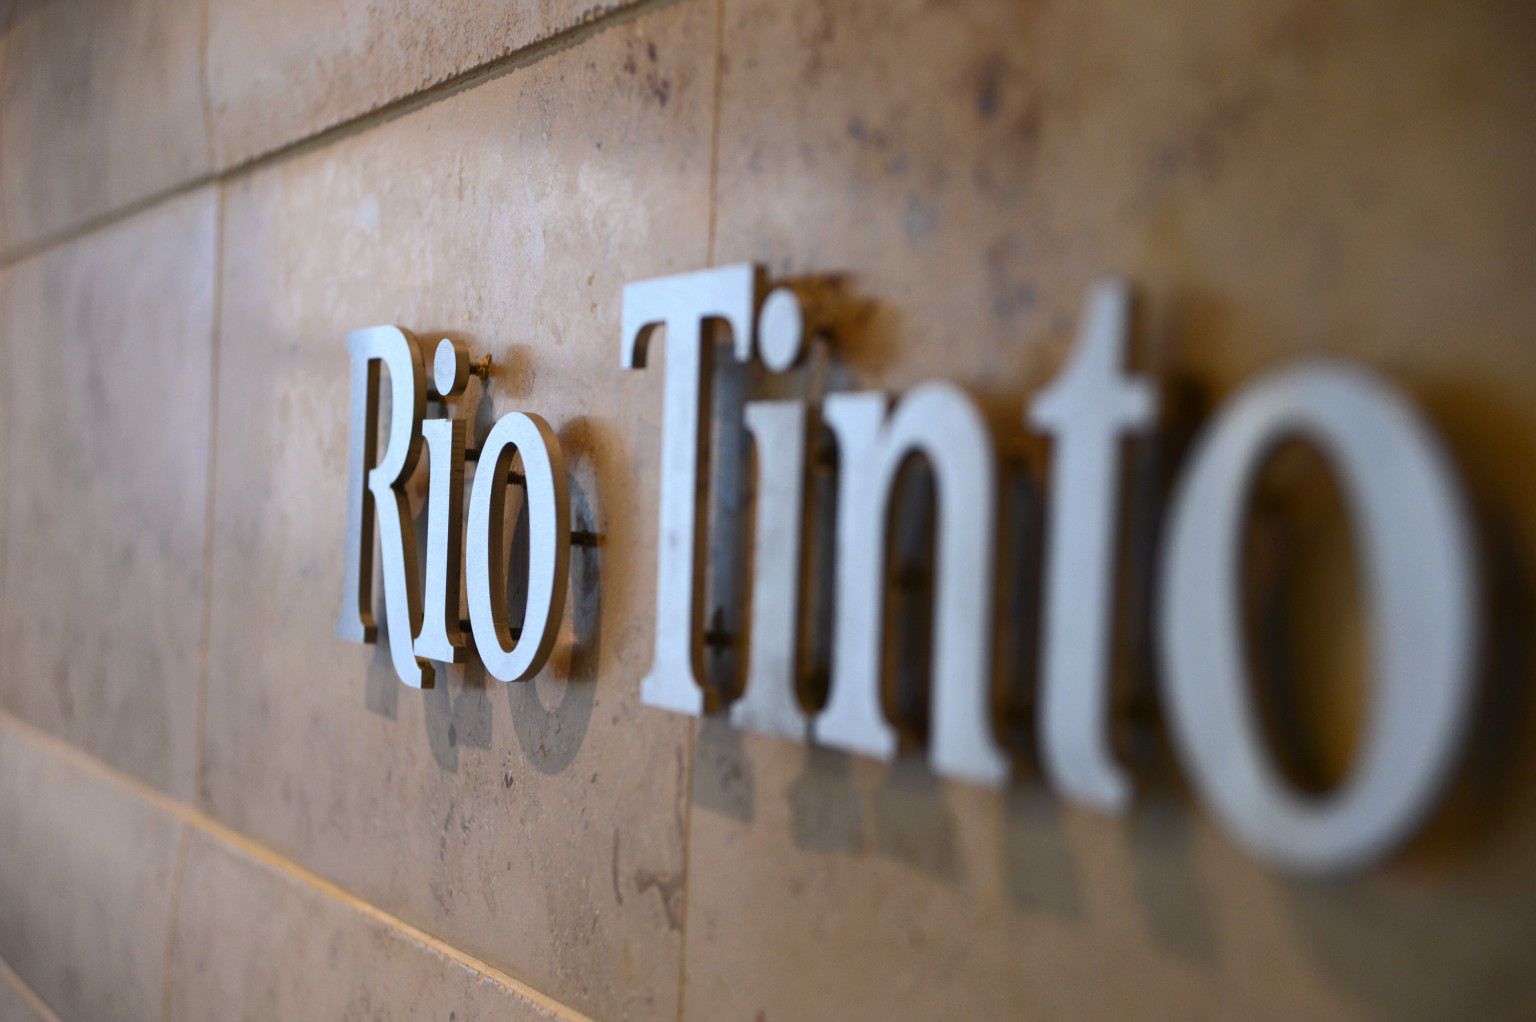 RIO-TINTO-FEATURED-IMAGE.jpg